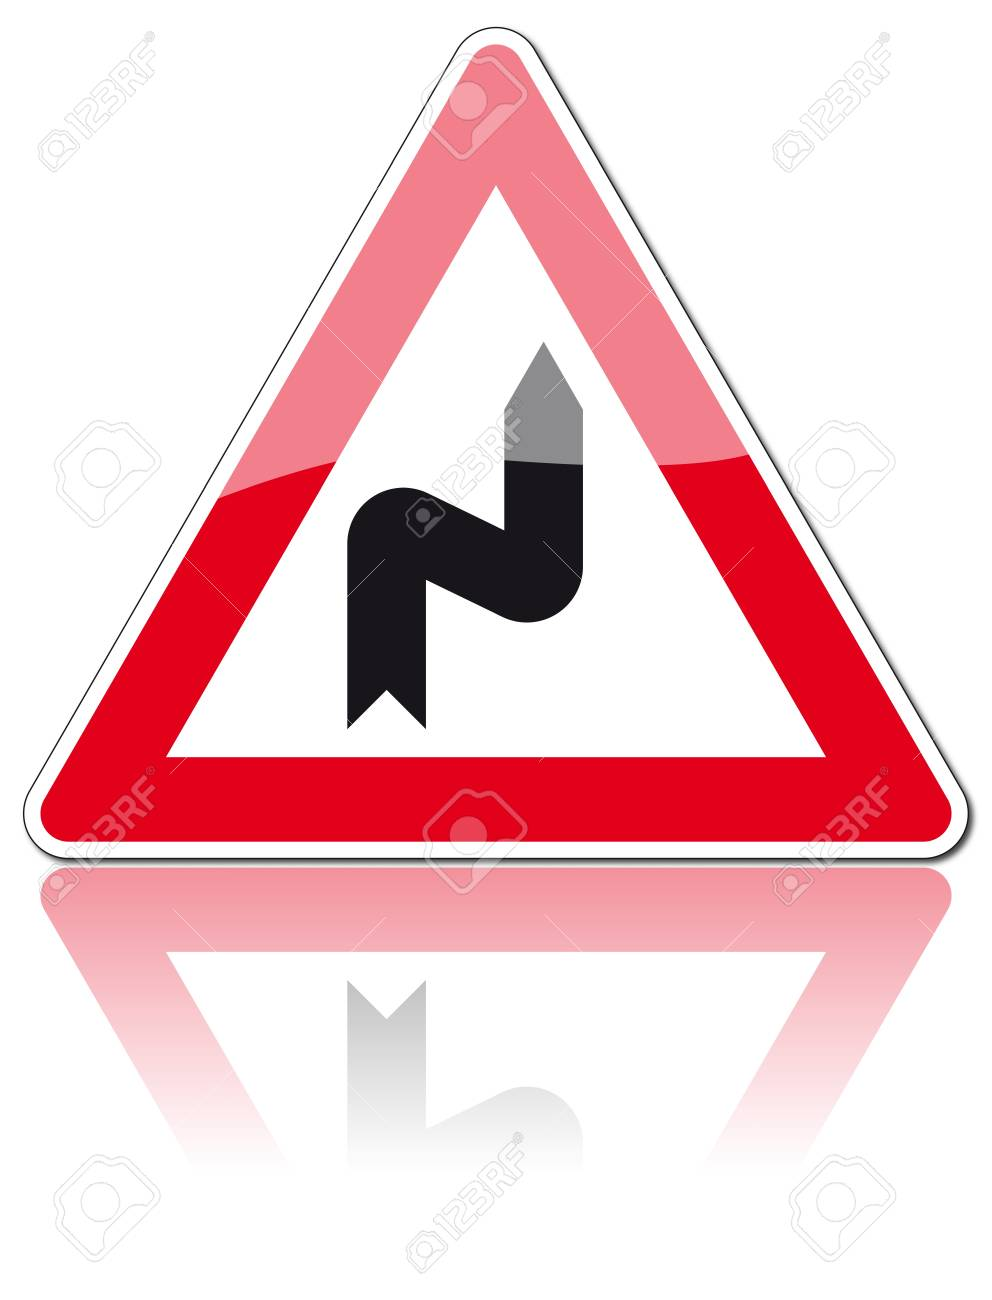 road sign Stock Photo - 9974993